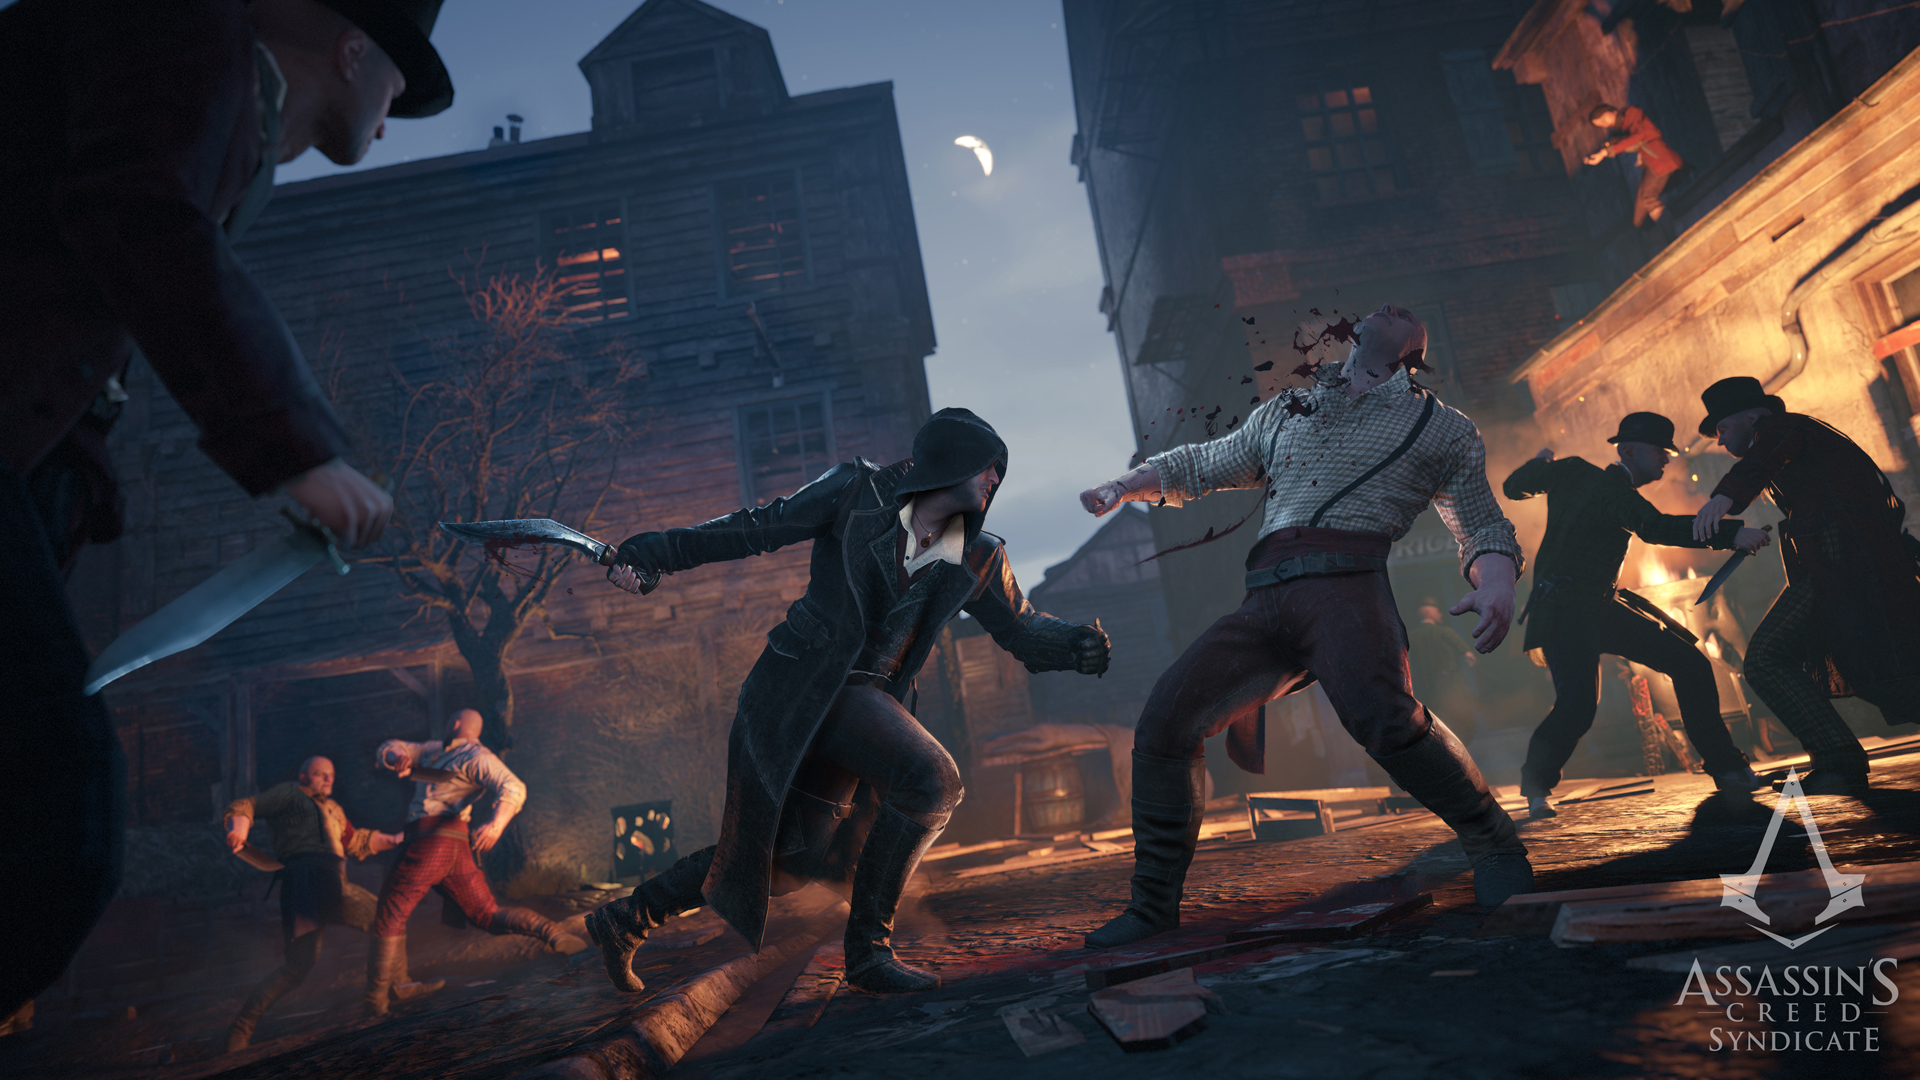 3. Assassin's Creed Syndicate